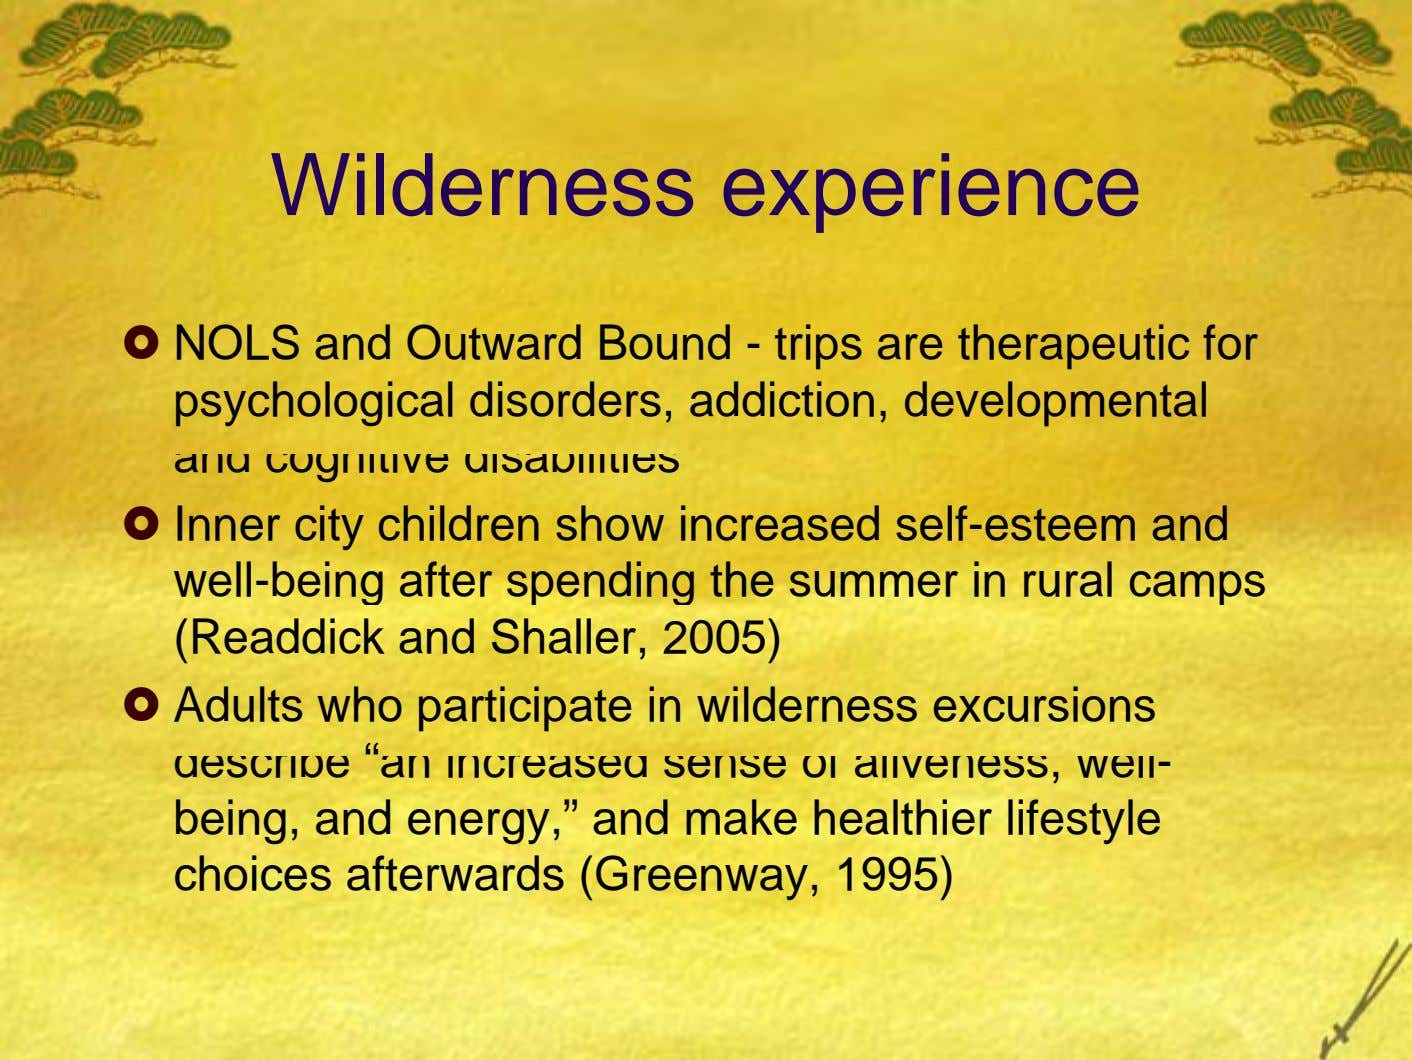 Wilderness experience NOLS and Outward Bound - trips are therapeutic for psychological disorders, addiction, developmental and